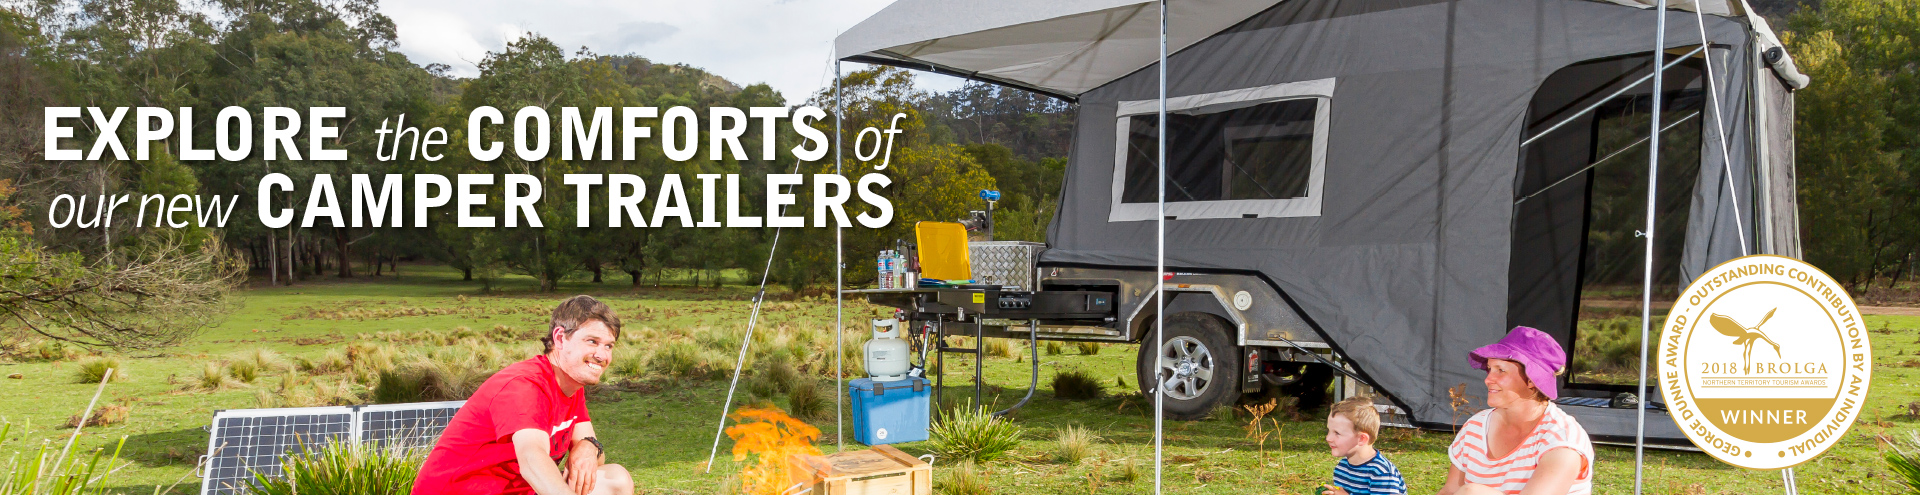 Explore the comforts of our new camper trailers